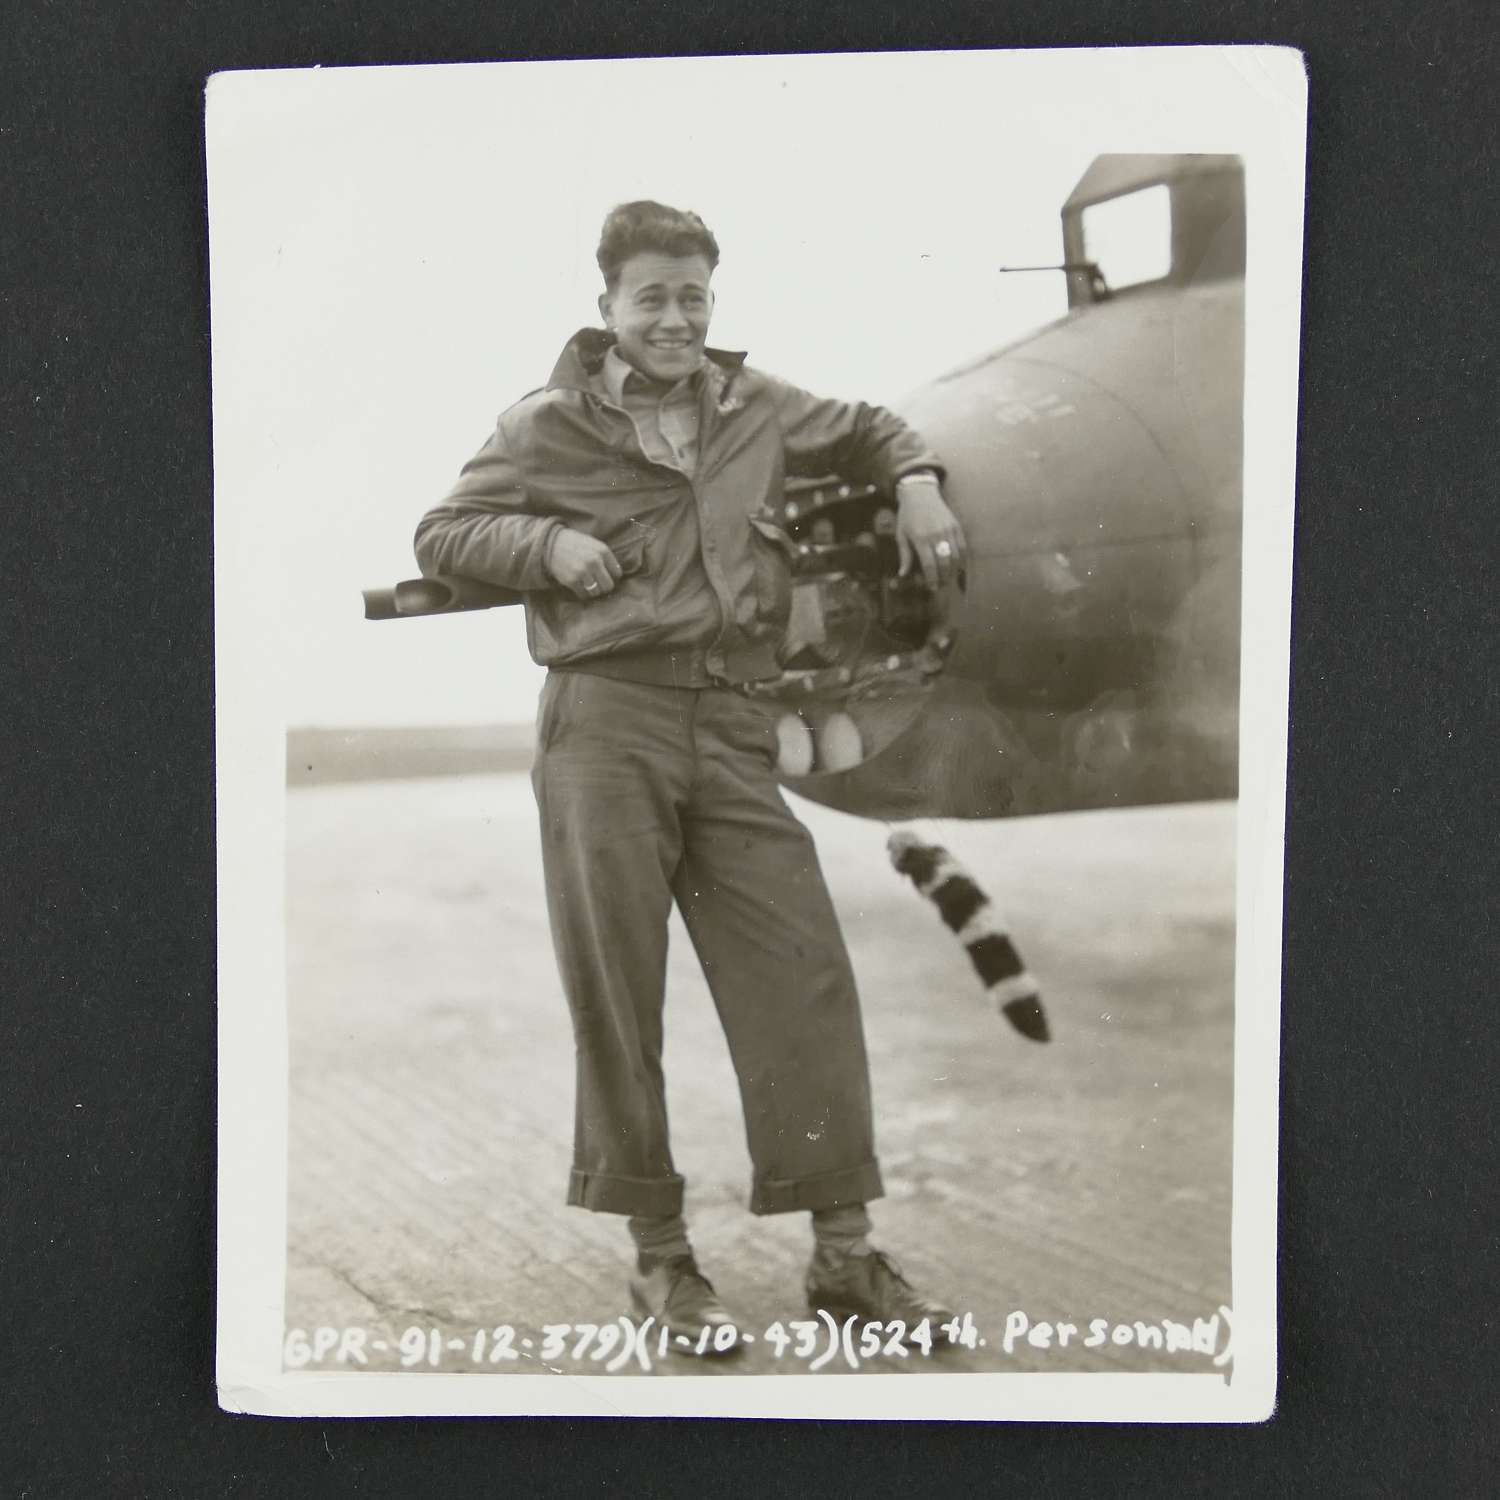 USAAF 8th AAF photo - 524th bomb squadron rear gunner